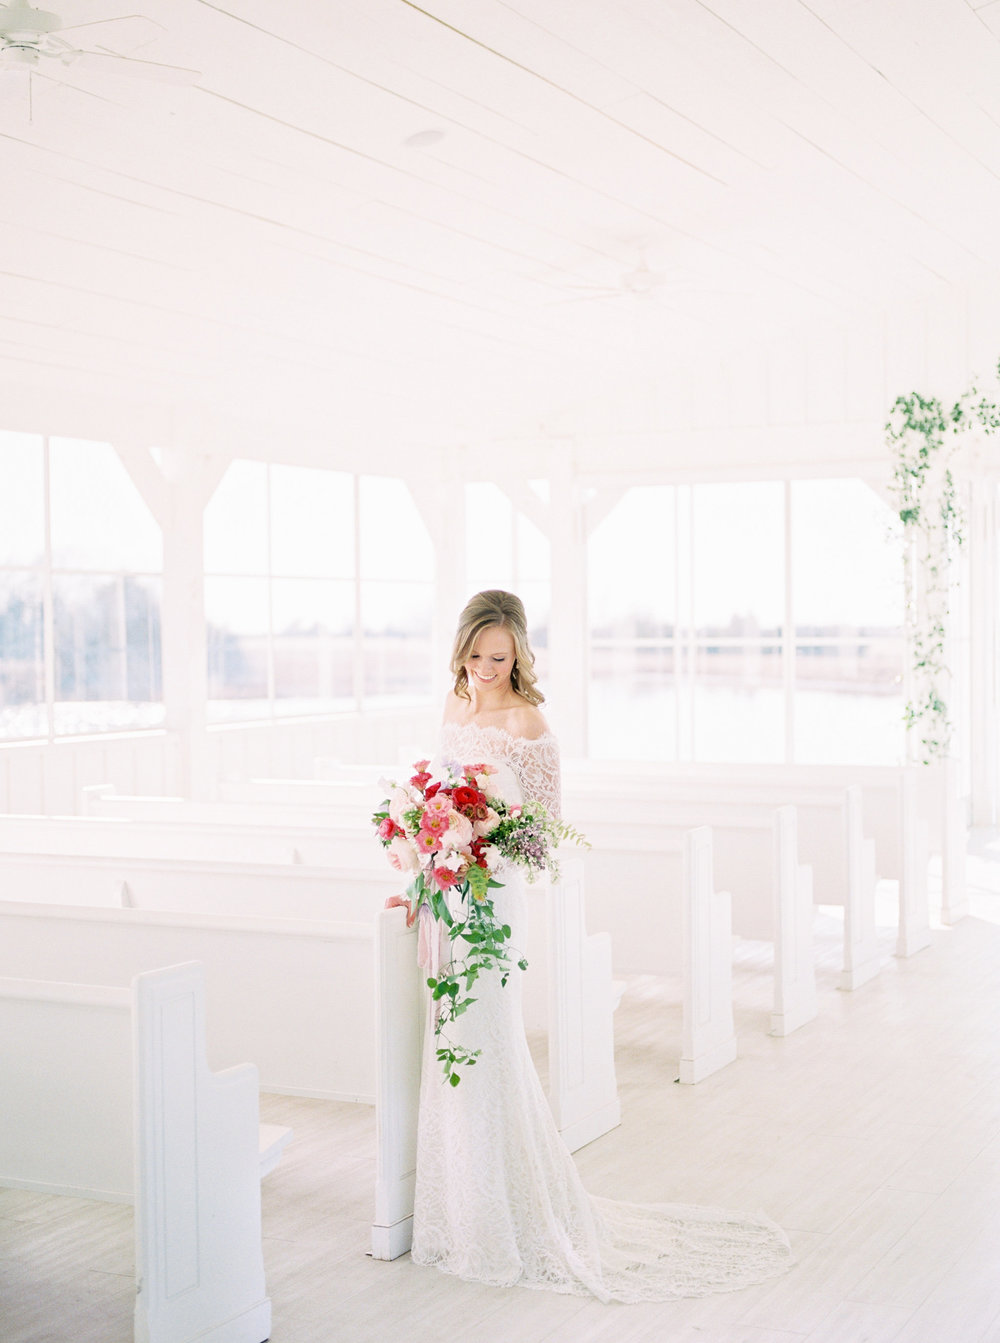 Vibrant Winter Wedding - Lindsey Brunk